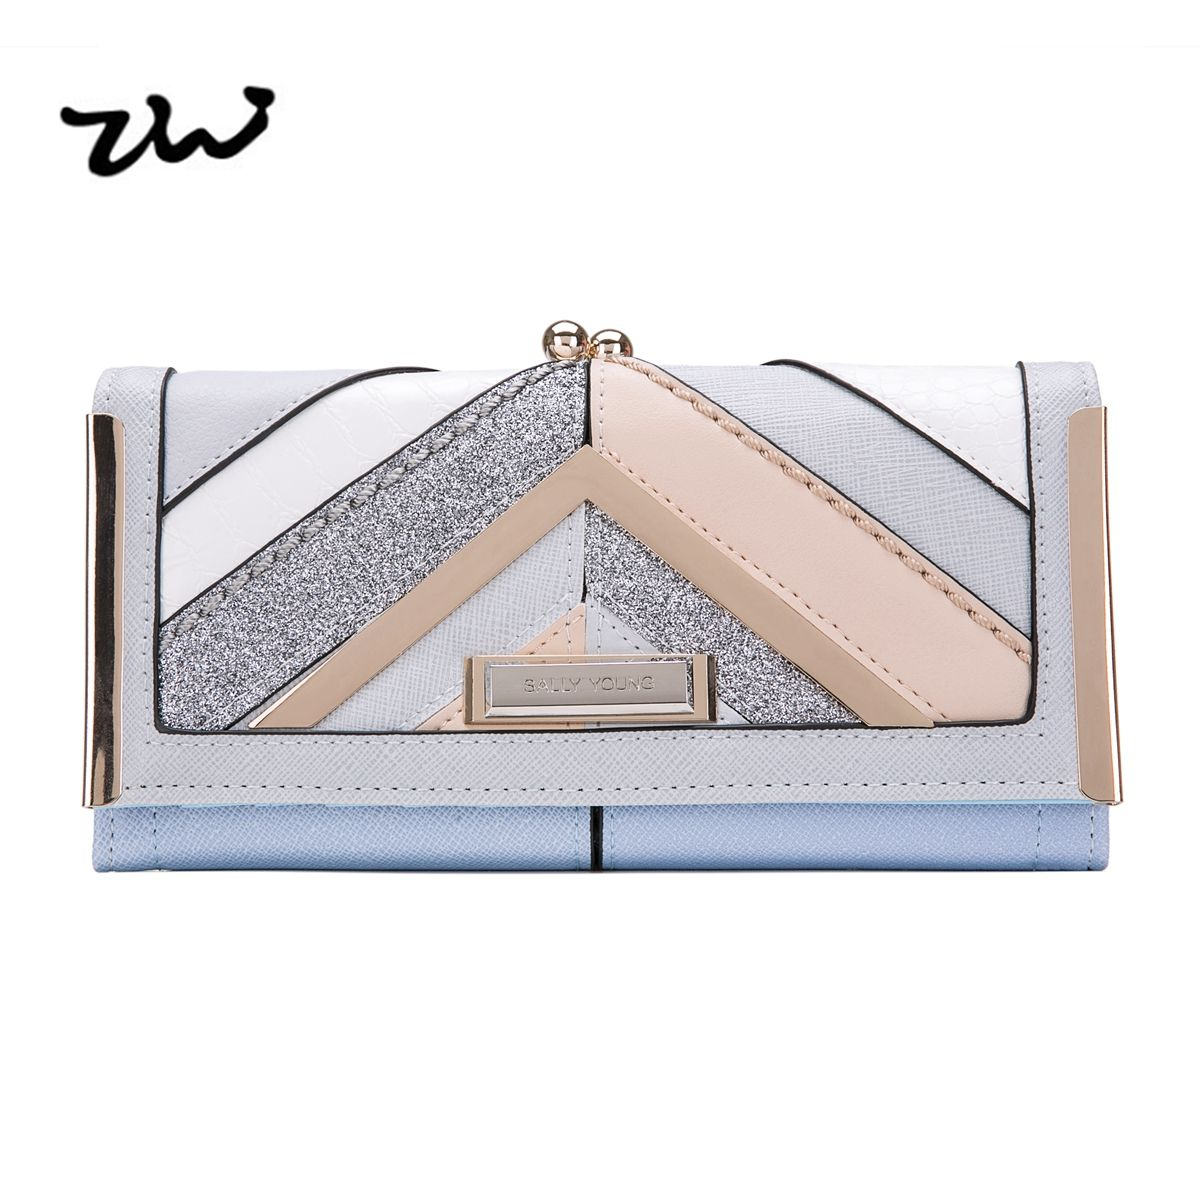 ZIWI 2017 New Women Wallets For Credit Cards Soft Pu Leather Fashion Long Coin Purses Holders Splicing Color Pattern SY5024